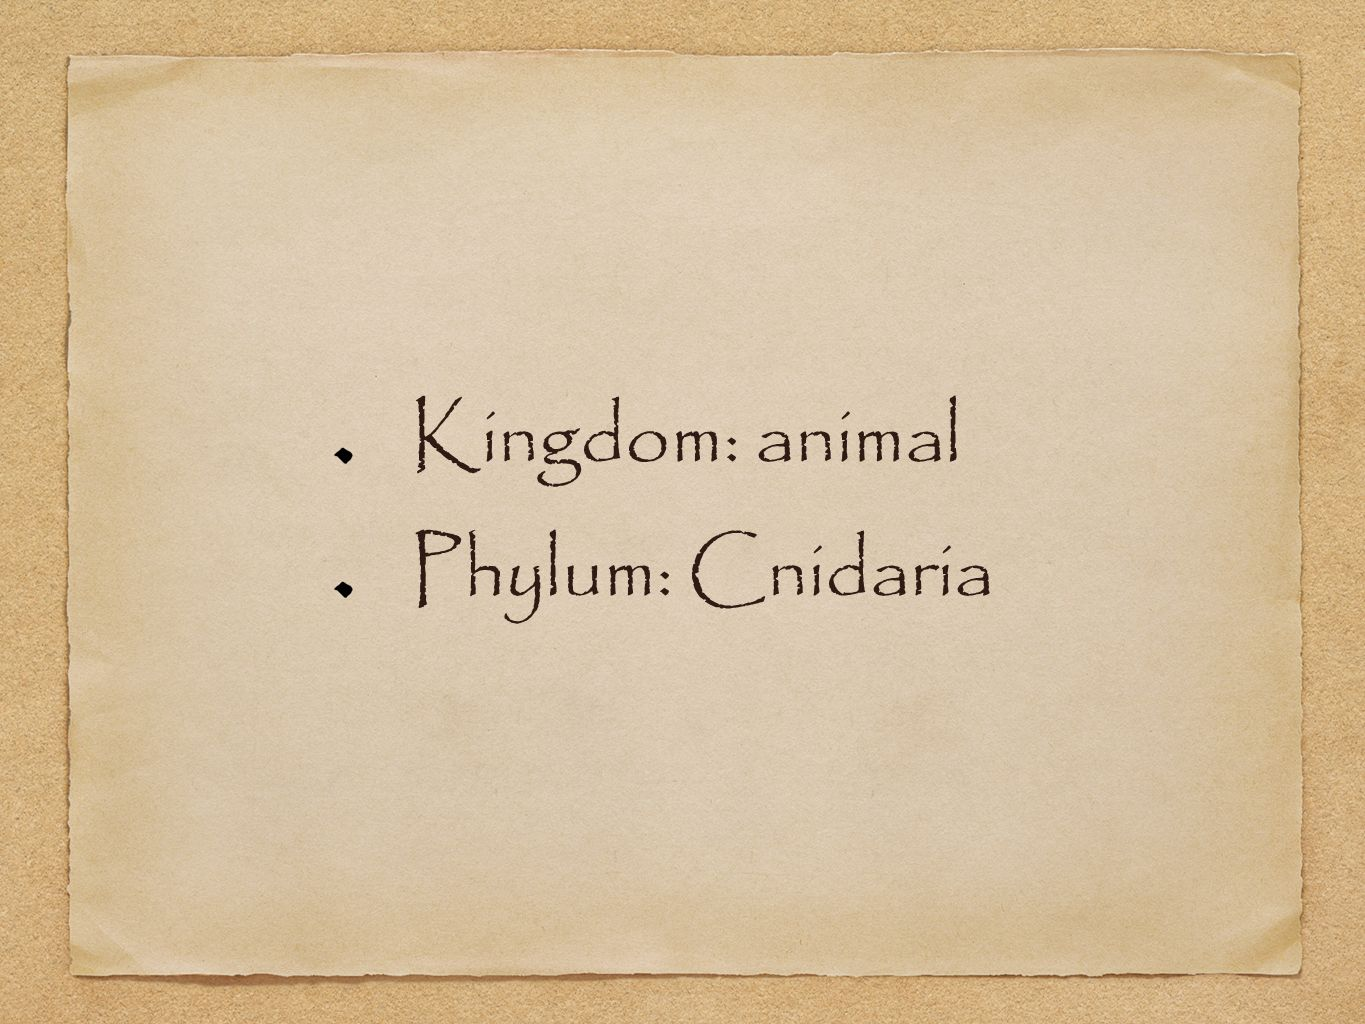 Kingdom: animal Phylum: Cnidaria